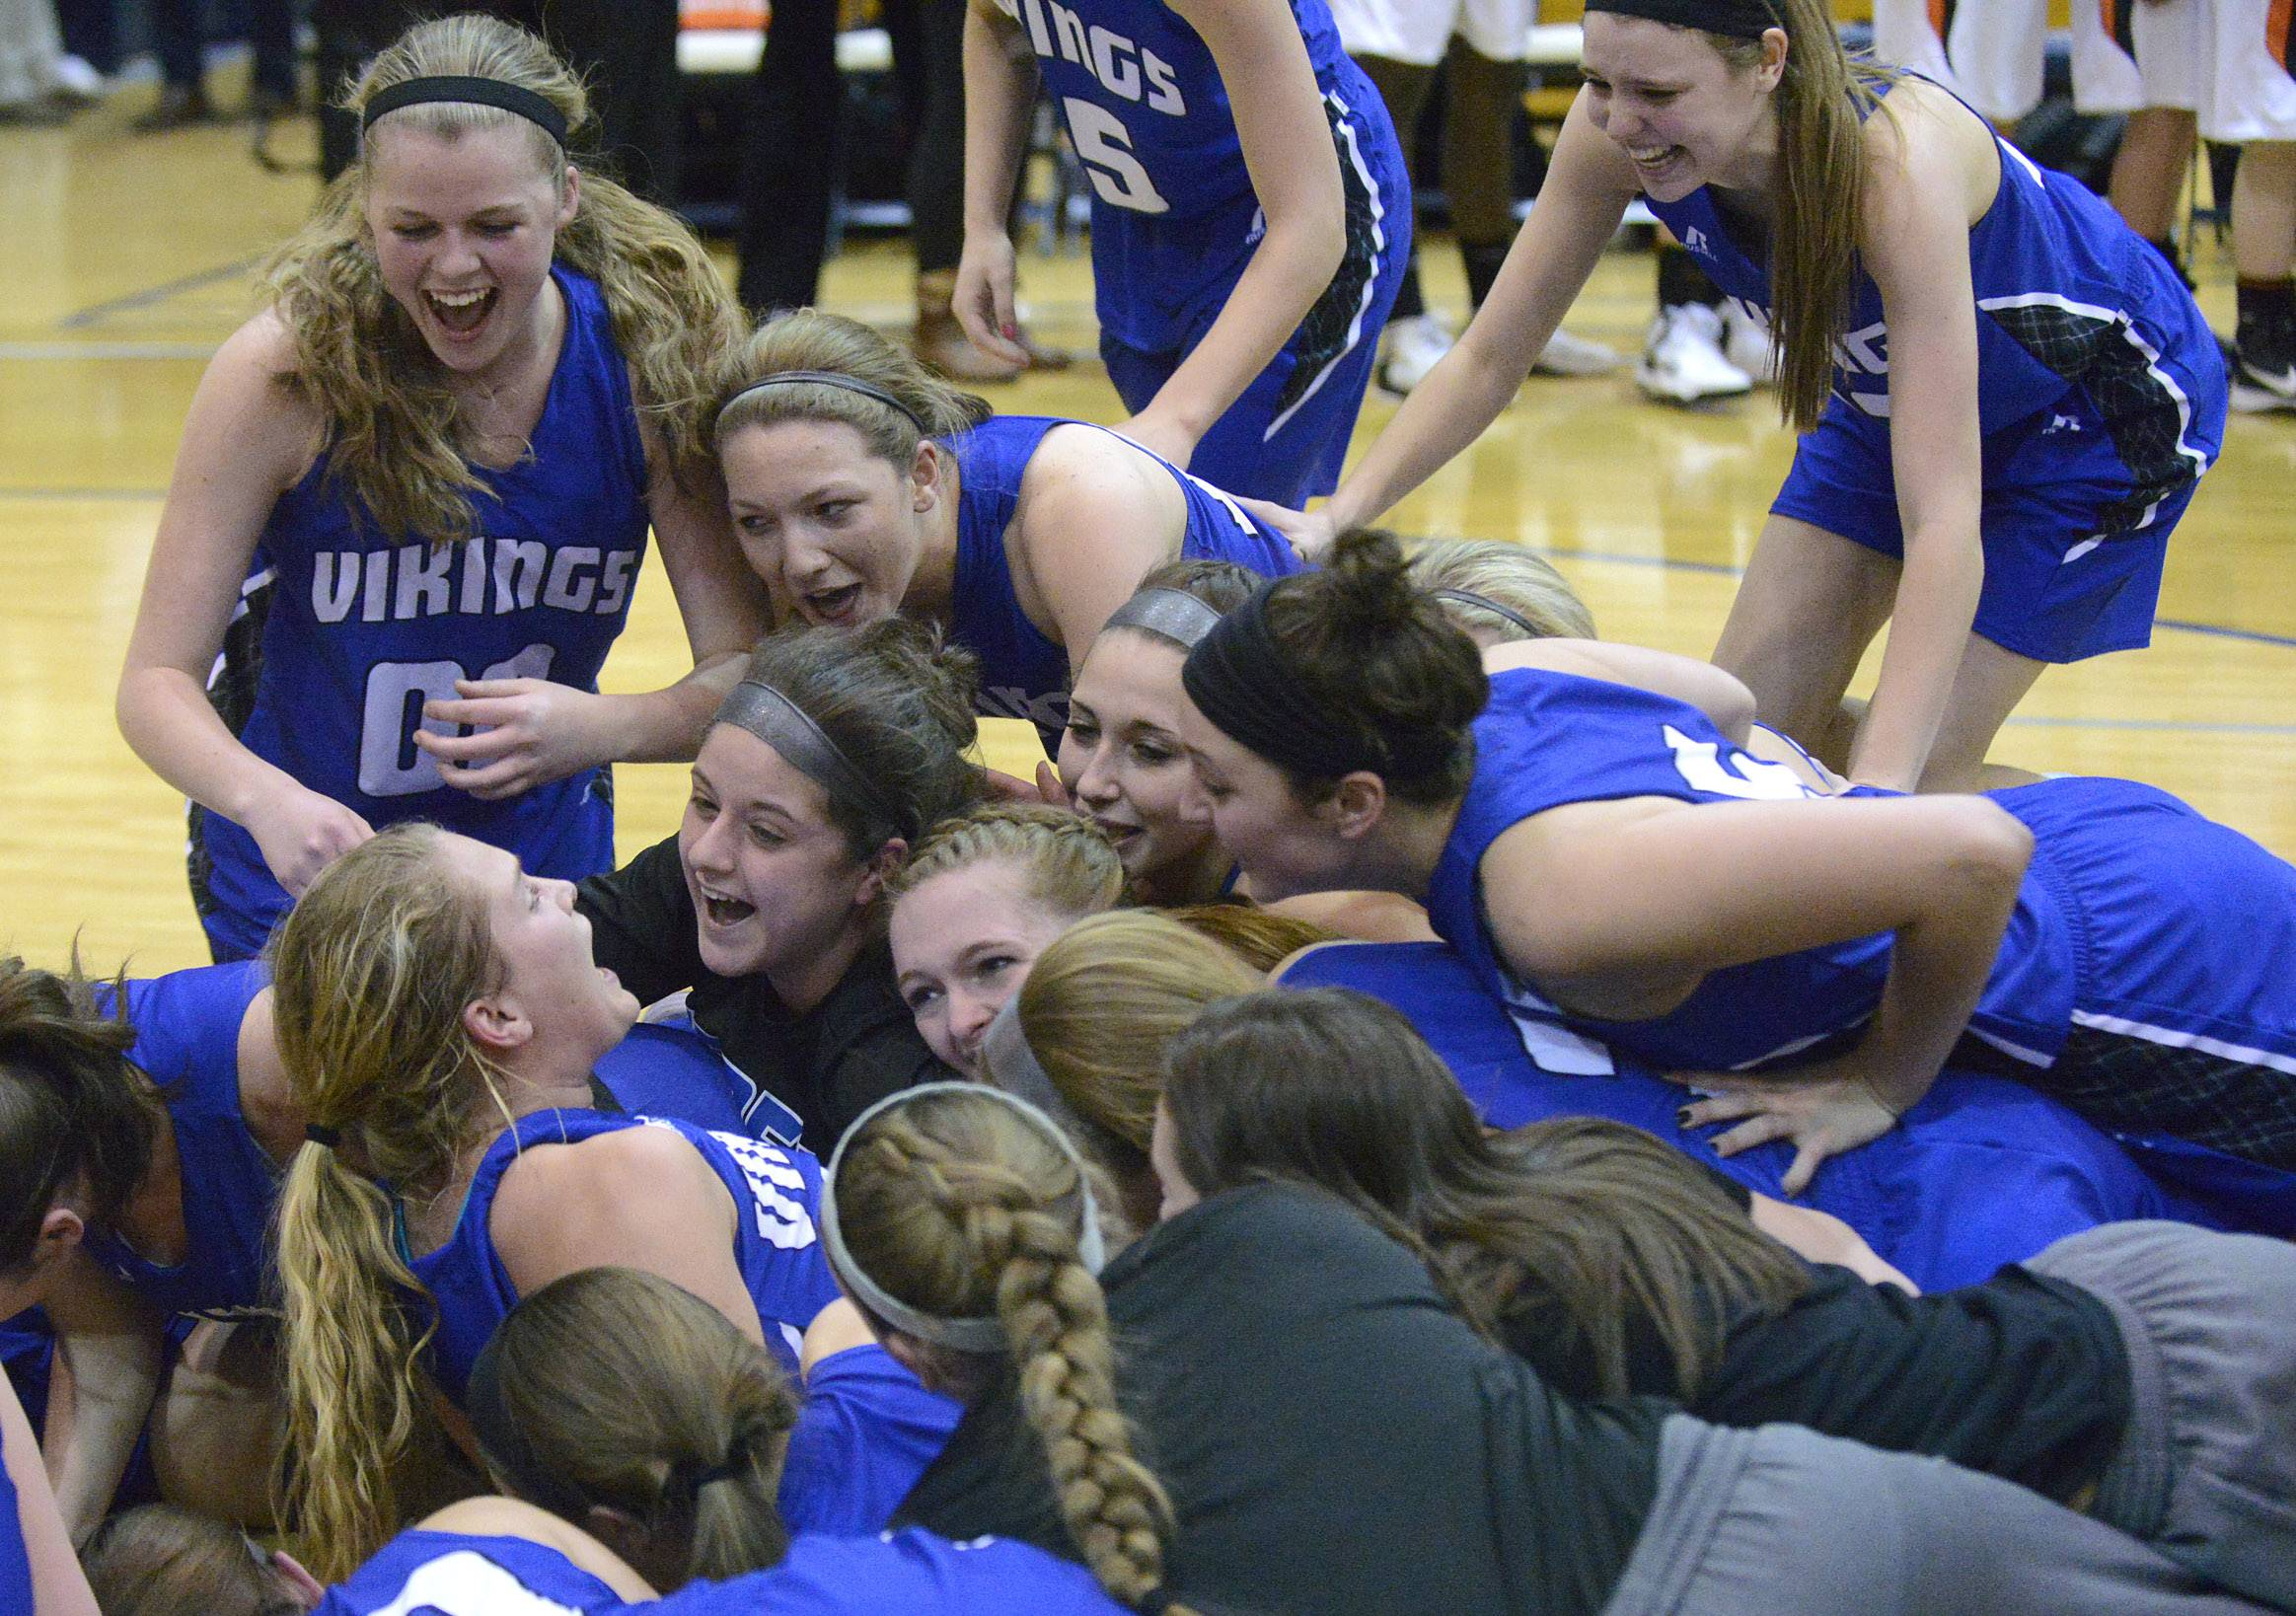 Geneva's Janie McCloughan, center bottom left, is tacked by her teammates after a Vikings win over Wheaton Warrenville South. McCloughan made the winning free throw to bring the team to victory.